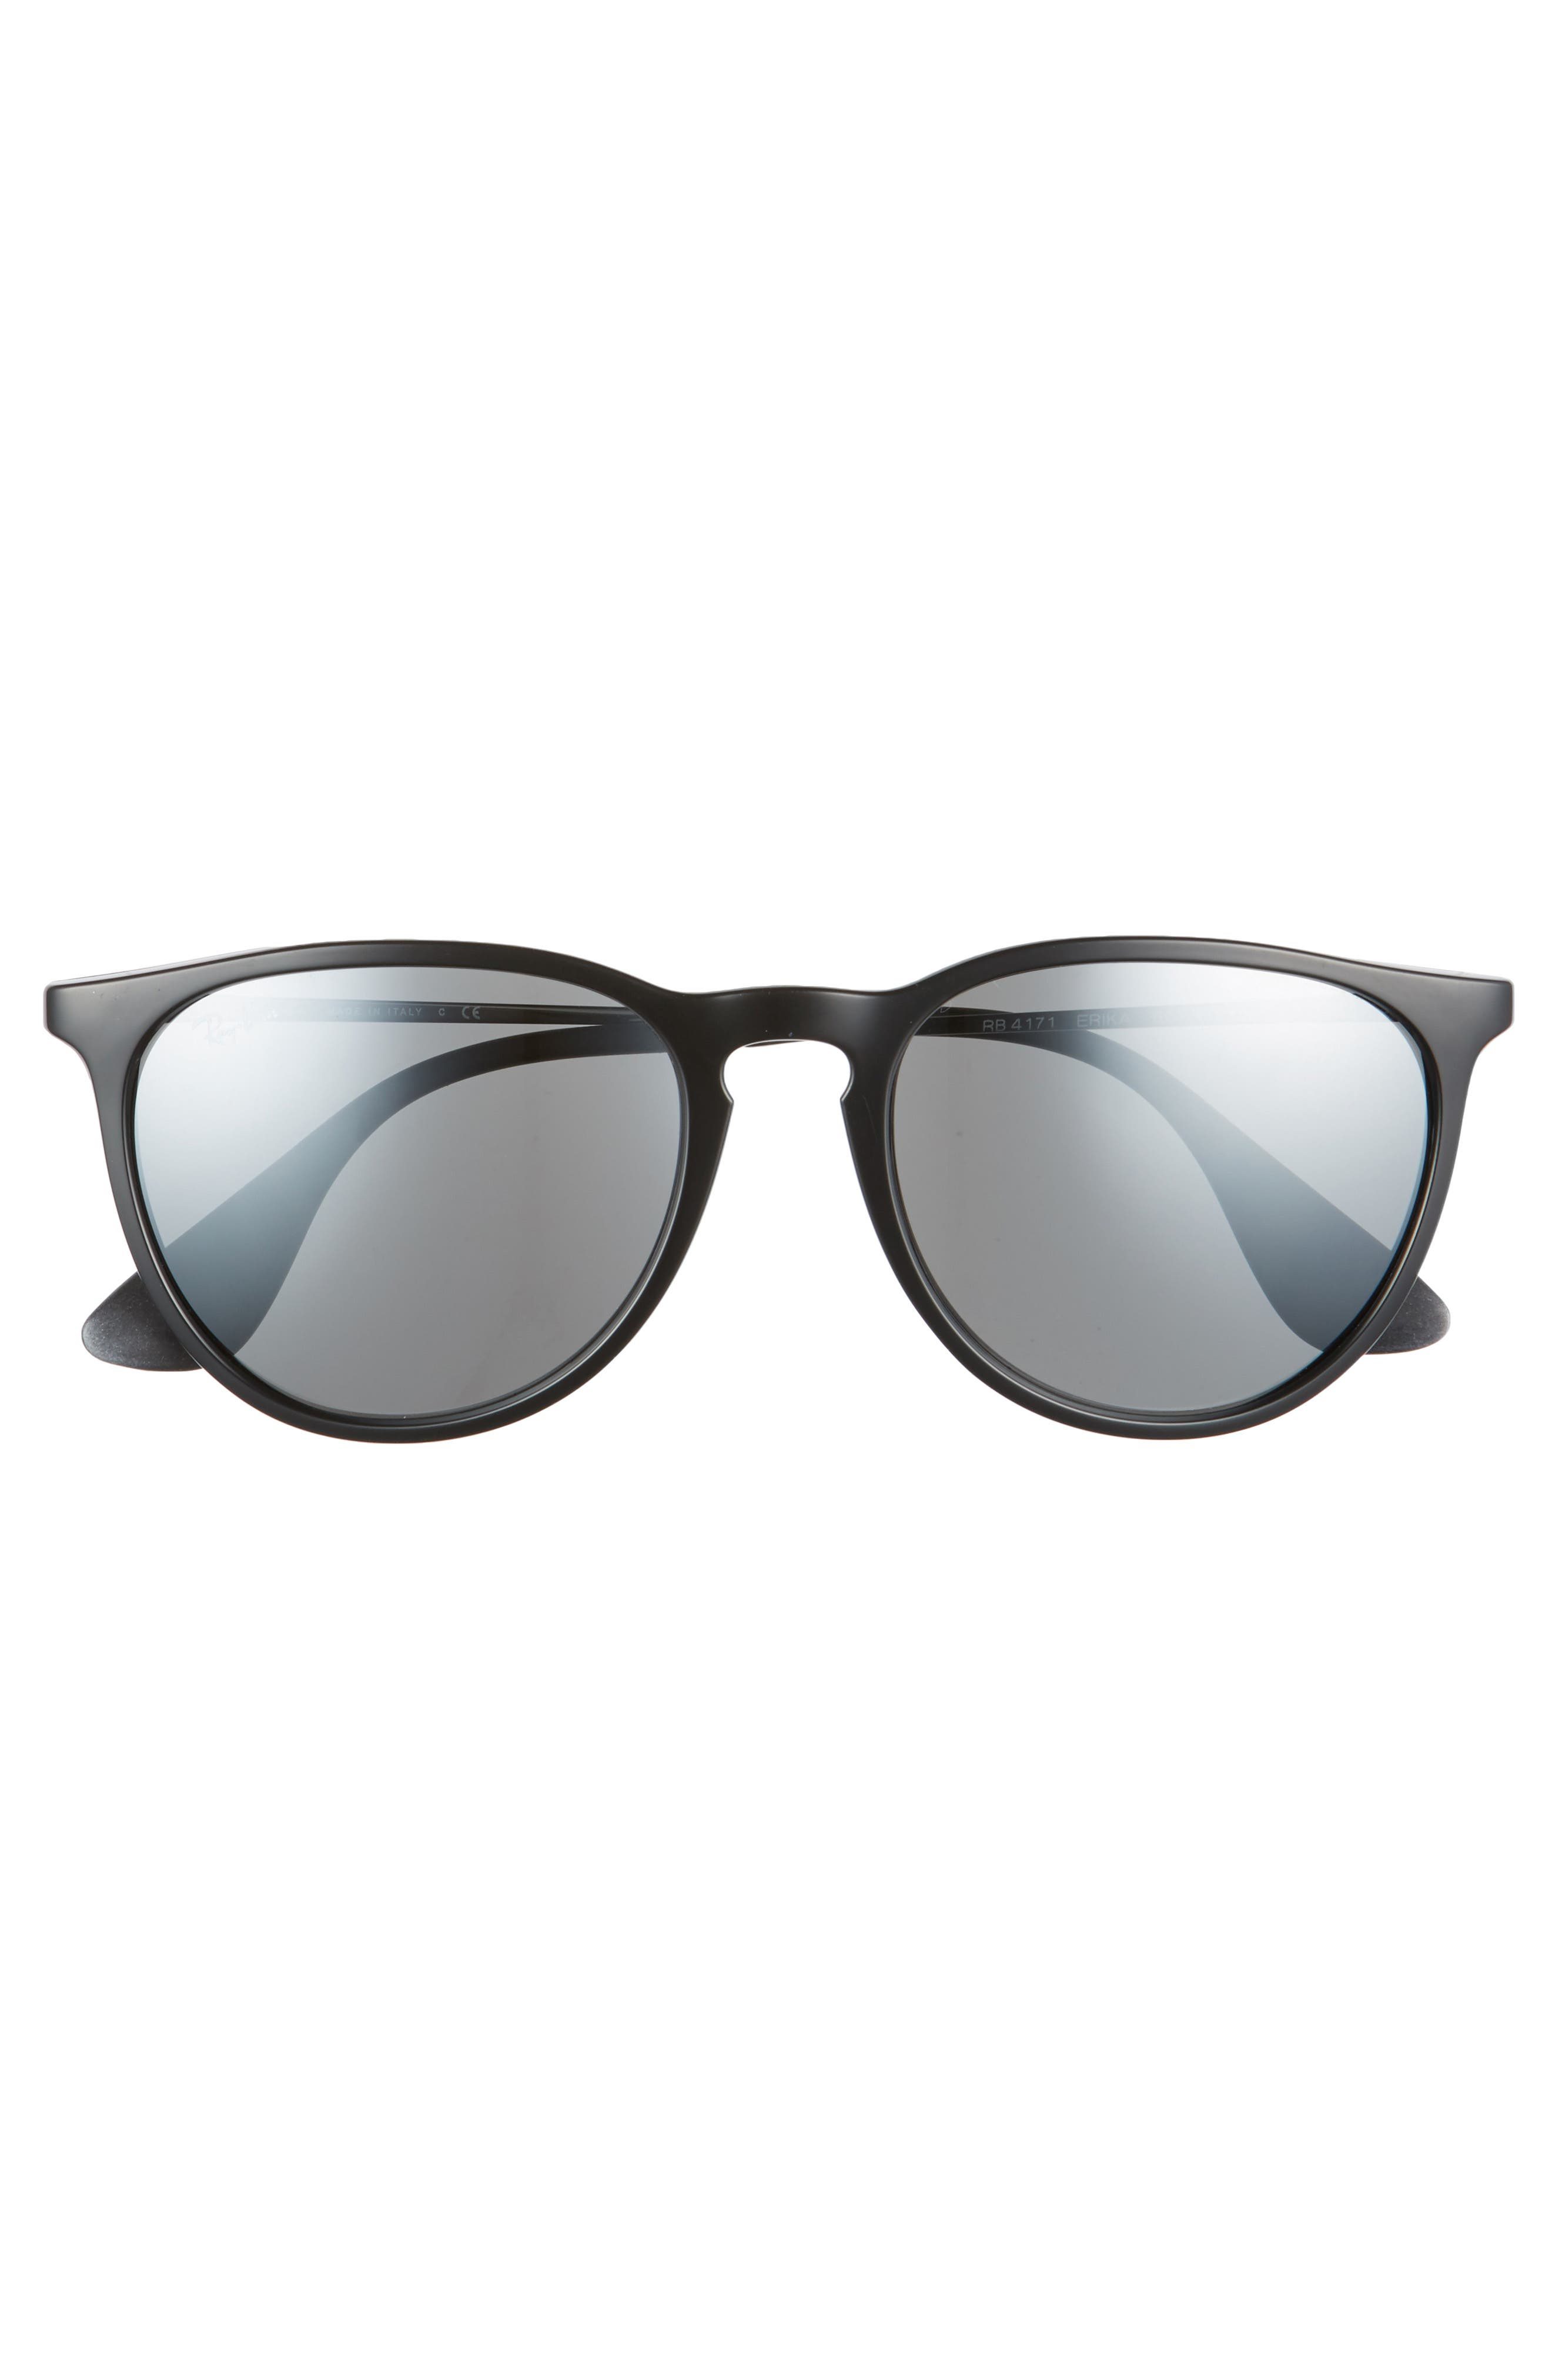 Erika 54mm Mirrored Sunglasses,                             Alternate thumbnail 5, color,